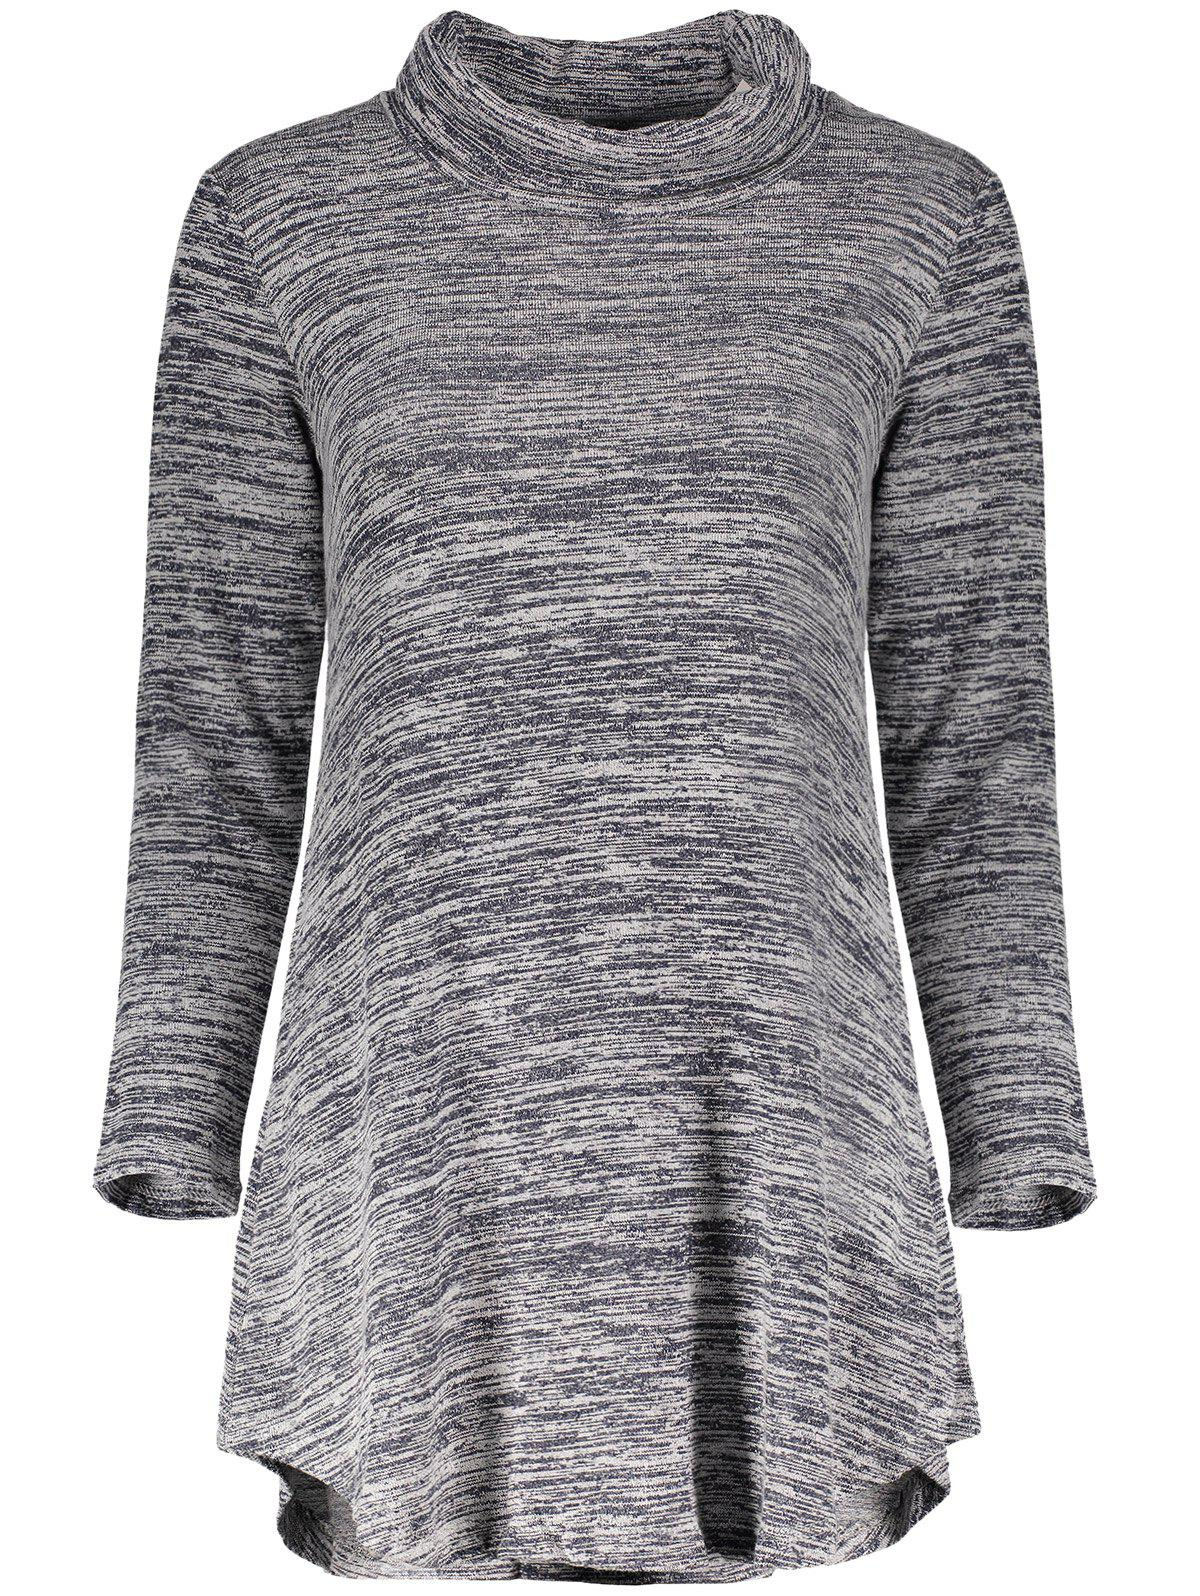 Chic Long Sleeve Cowl Neck Asymmetrical Women's Knitted Dress - GRAY M